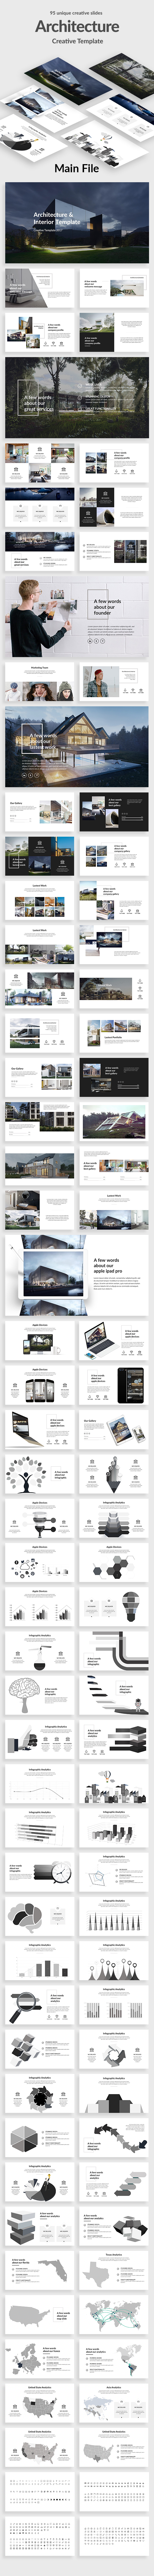 Architecture and Interior Google Slide Template - Google Slides Presentation Templates